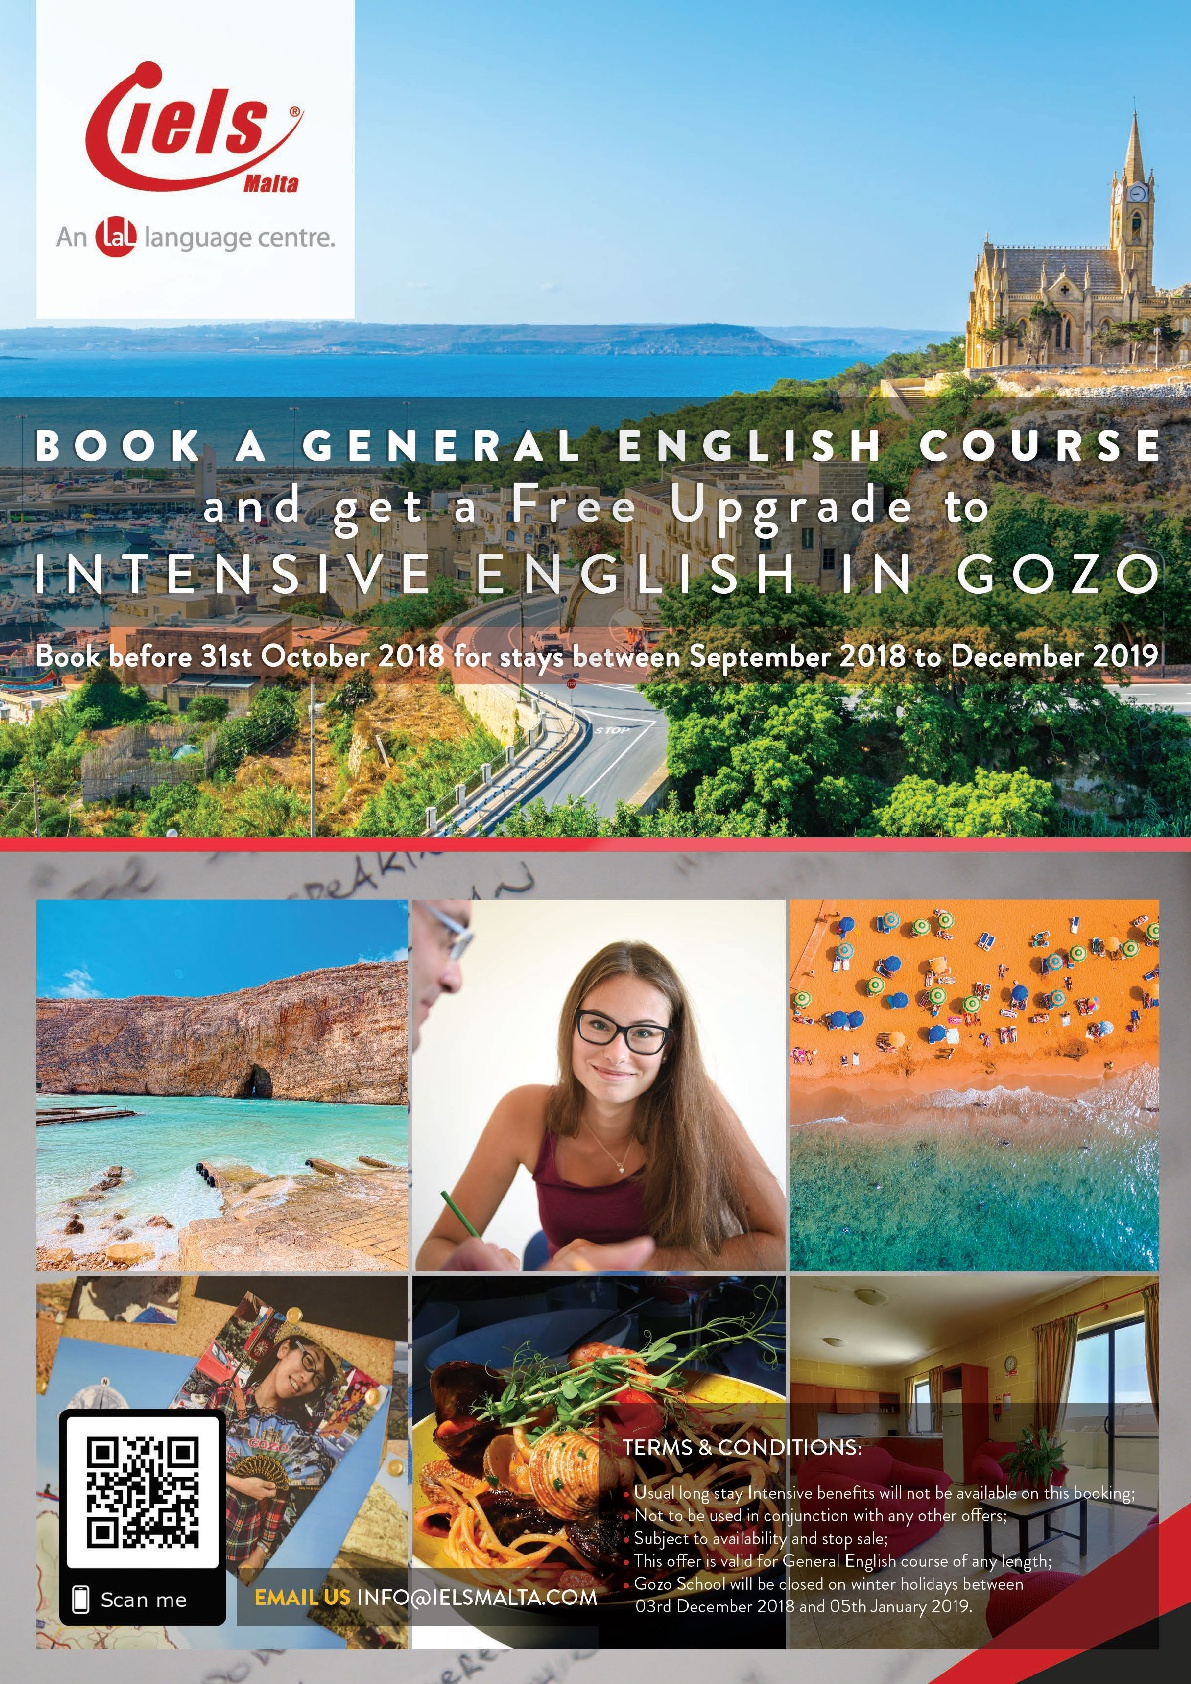 Free upgrade to Intensive English at IELS Gozo